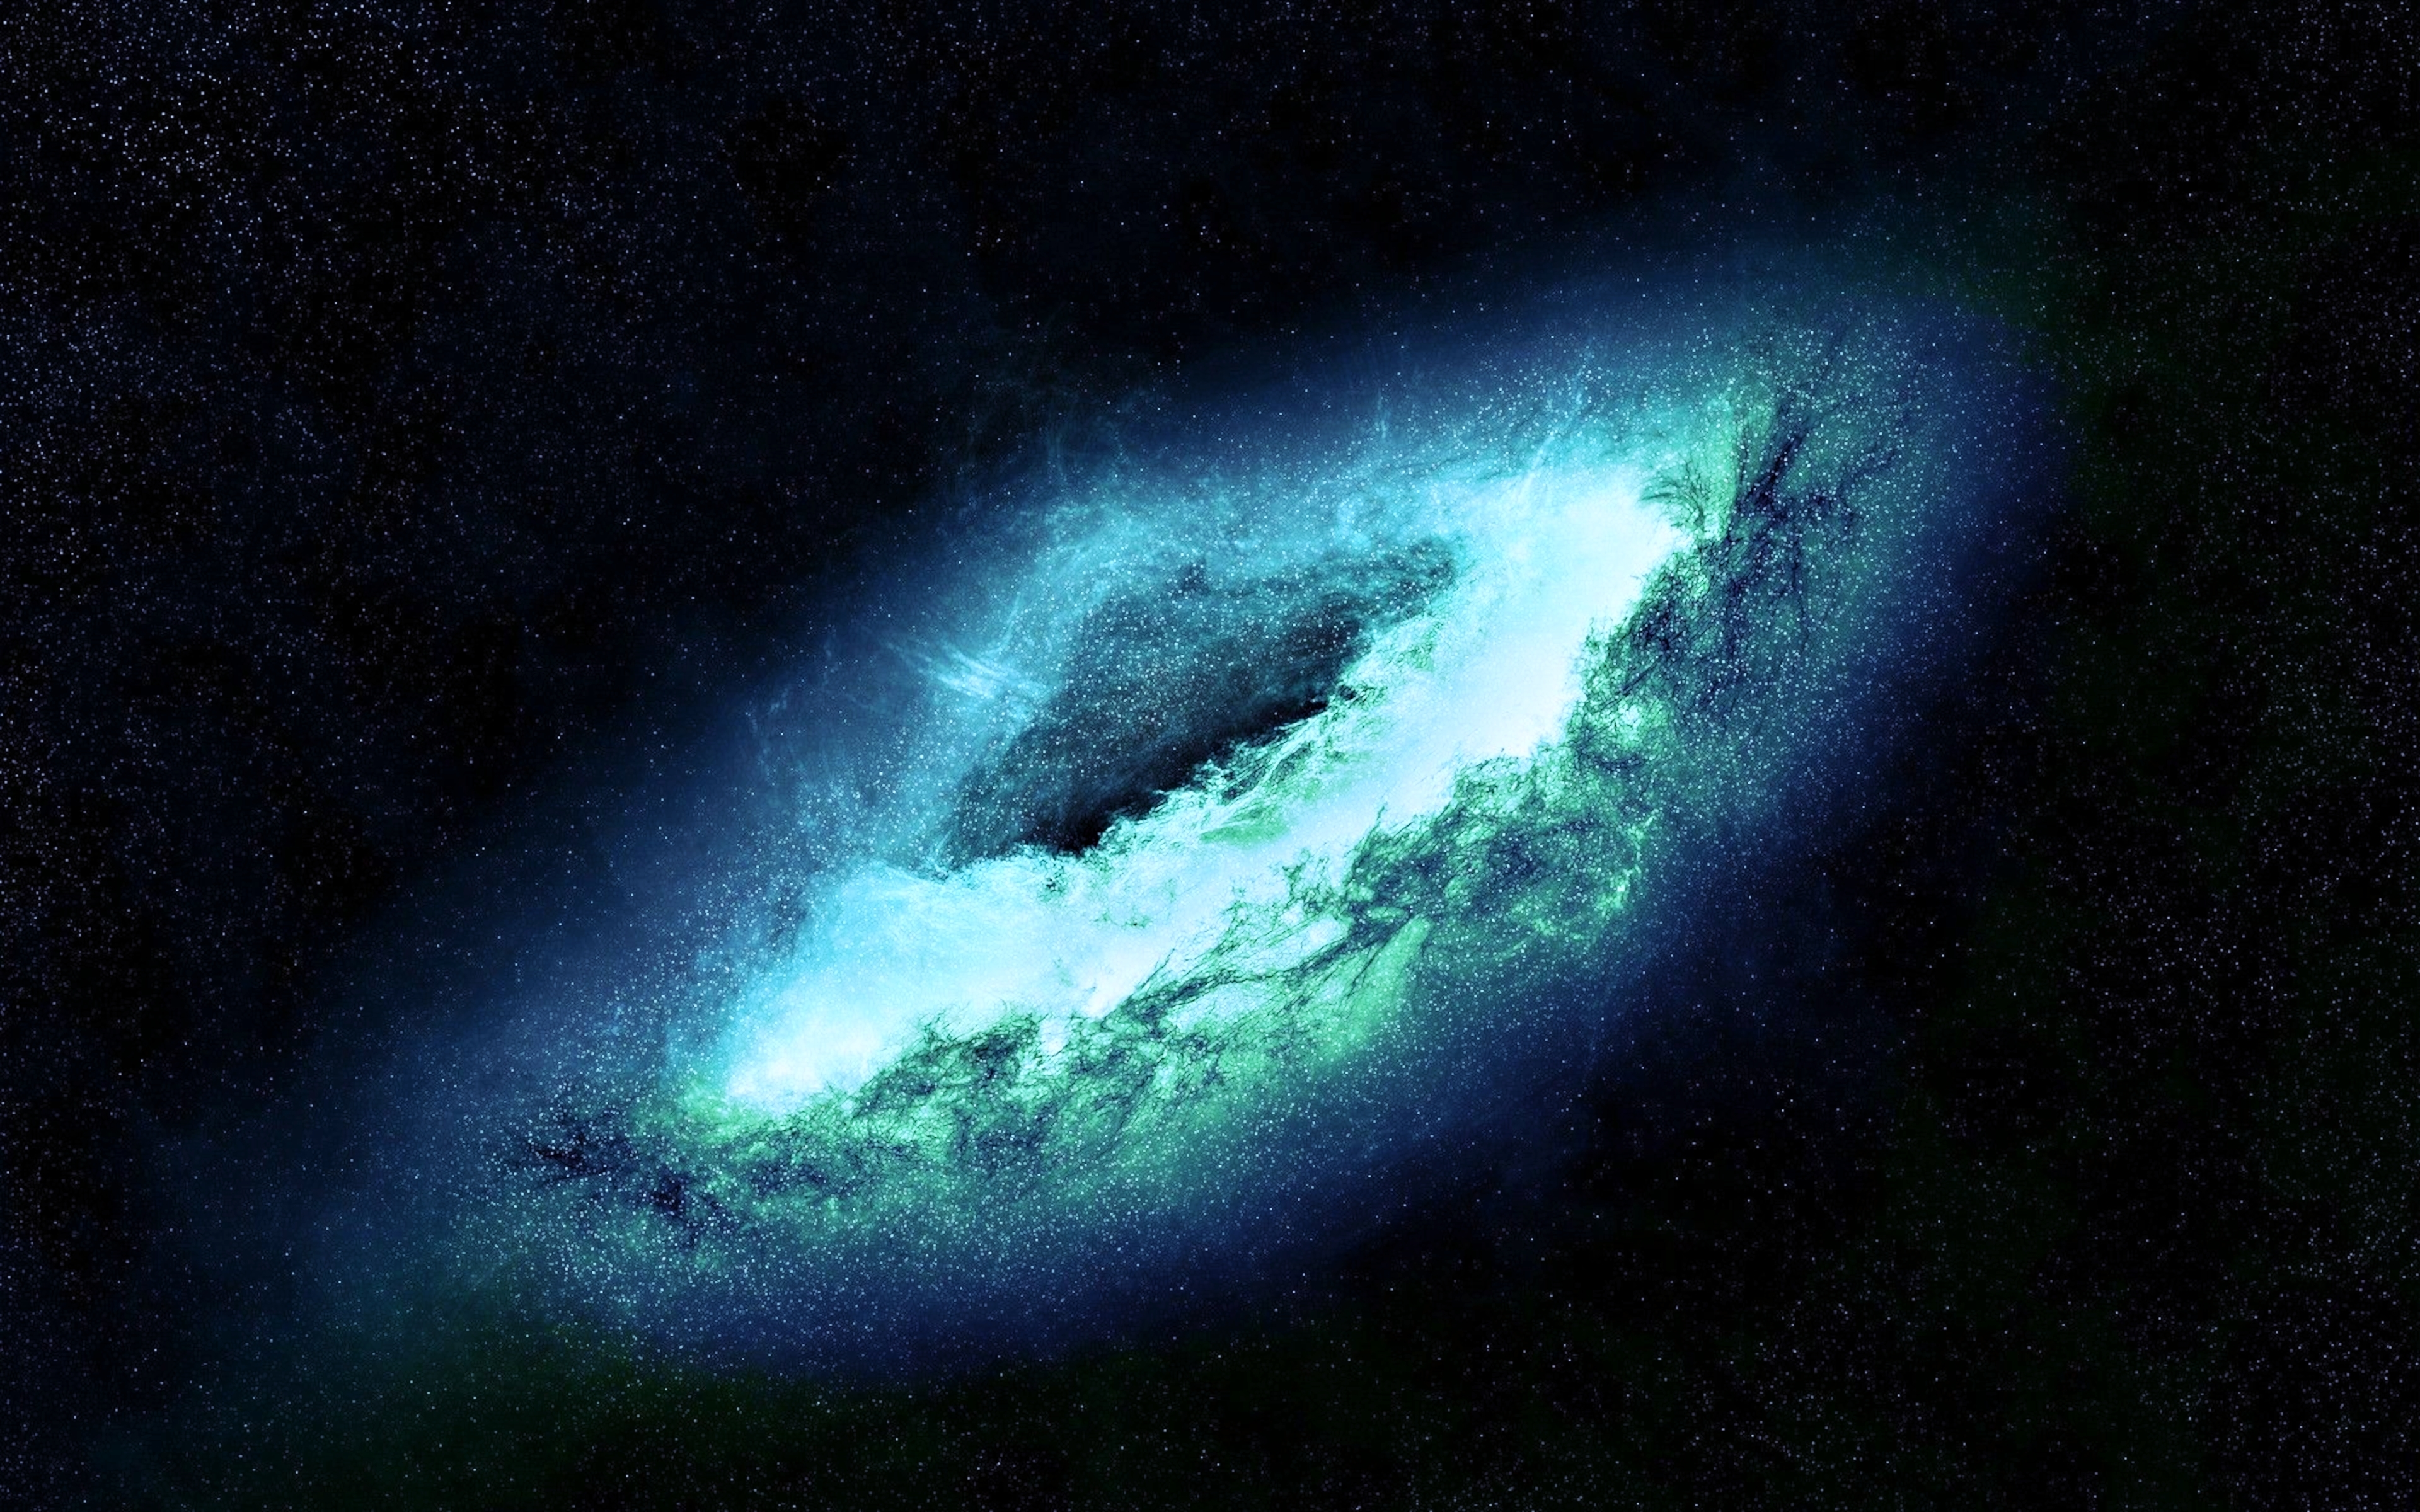 Wallpaper lenticular galaxy blue power wallpapers space   download 3840x2400